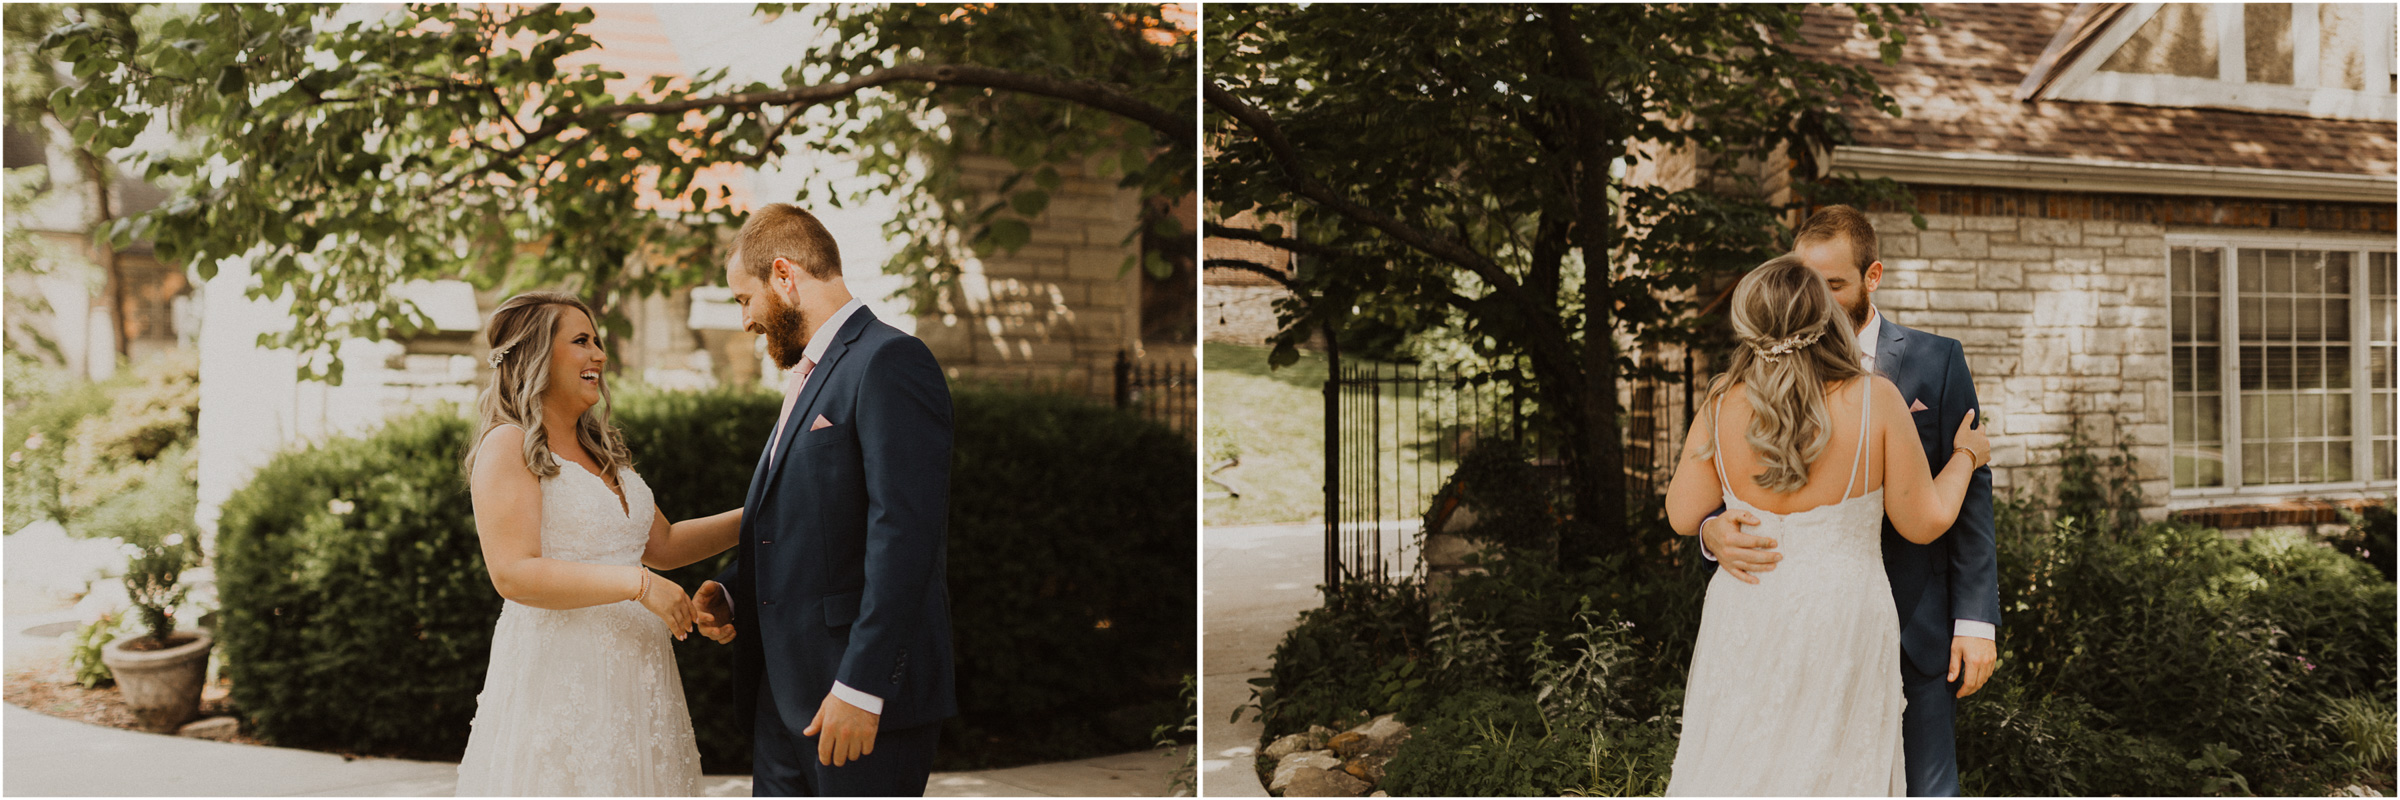 kansas city wedding photographer intimate summer wedding kc photography-13.jpg